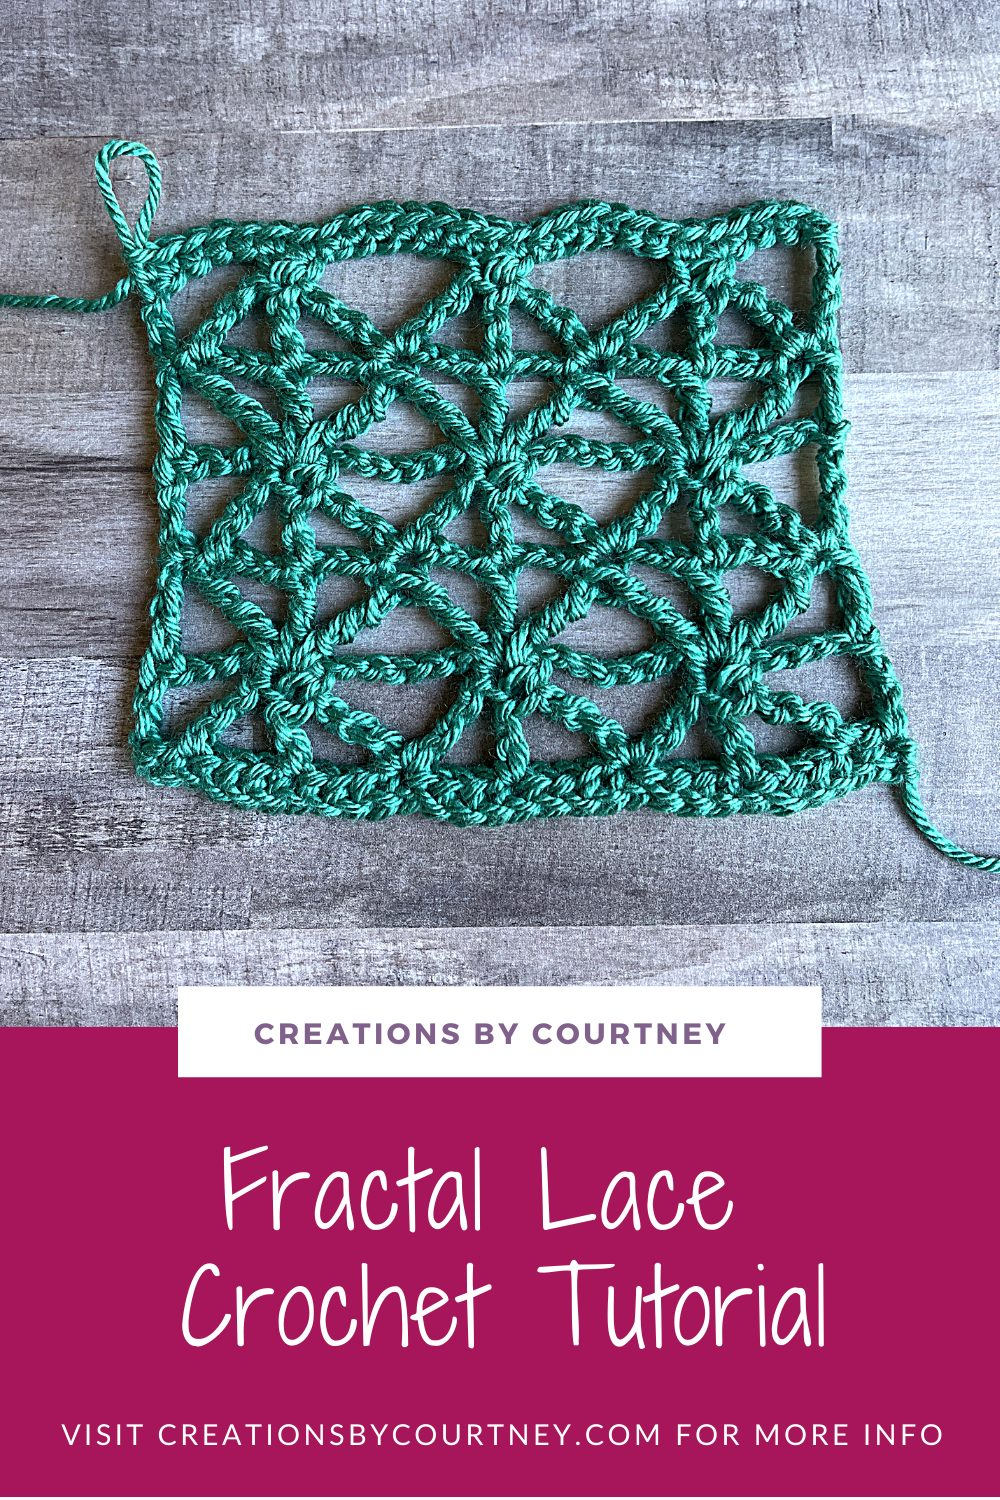 The Fractal Crochet Lace is created with a simple 2-row repeat that creates visual interest for the eyes. It's best to practice with natural fibers that can be blocked to really show off the stitch pattern.